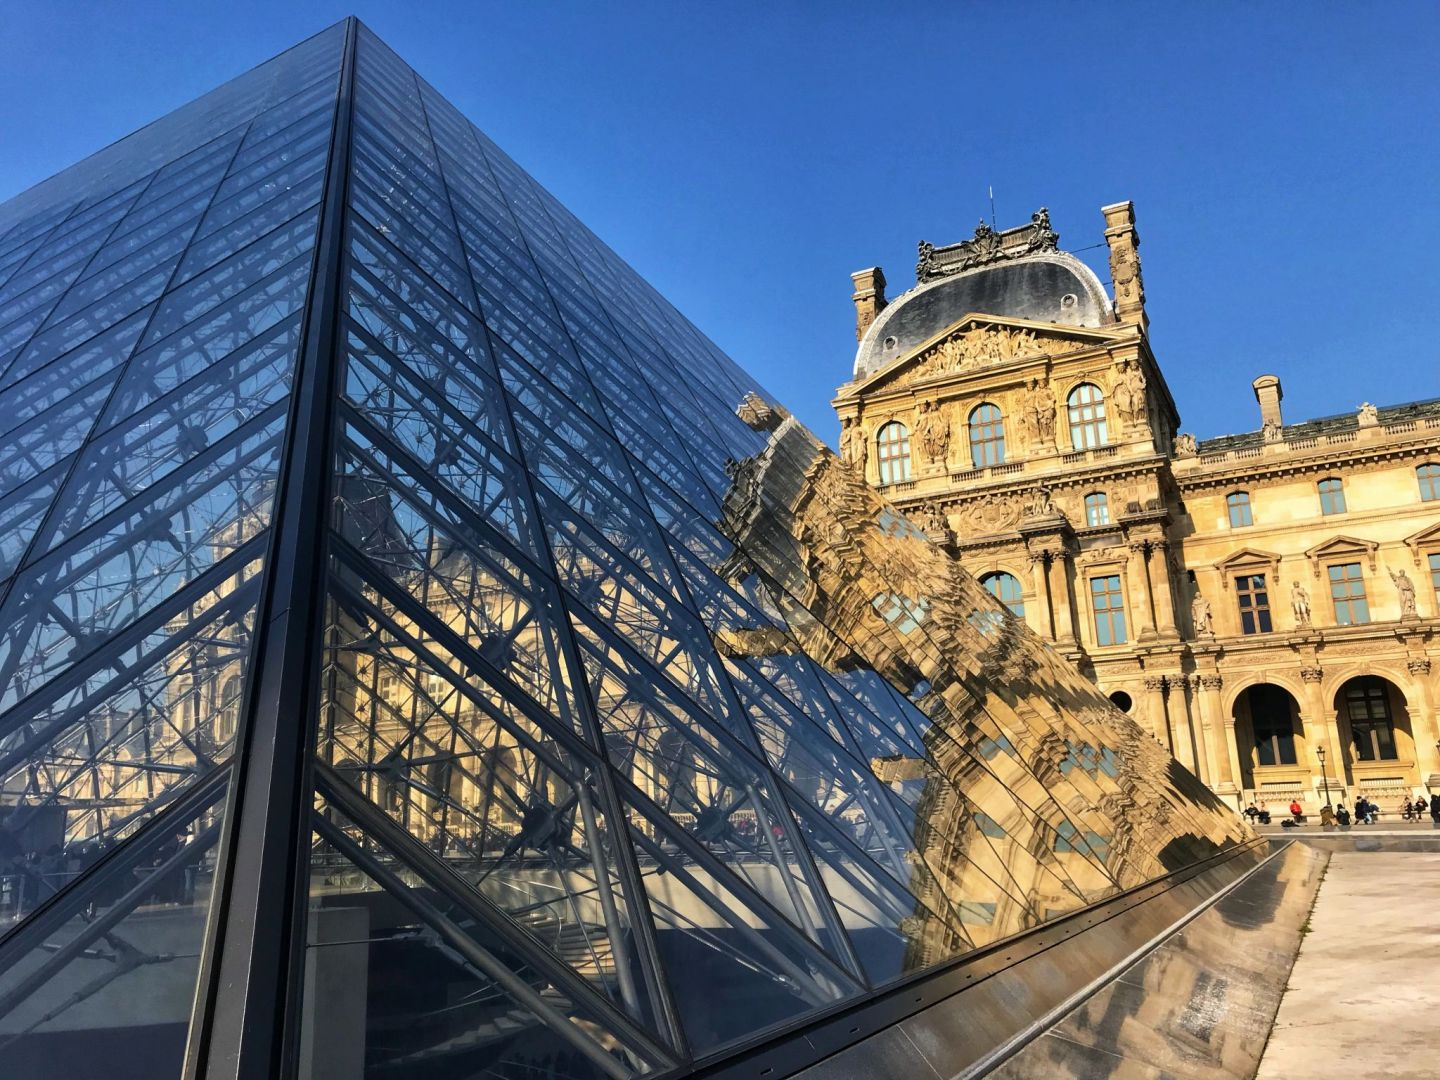 Side view of The Louvre Paris